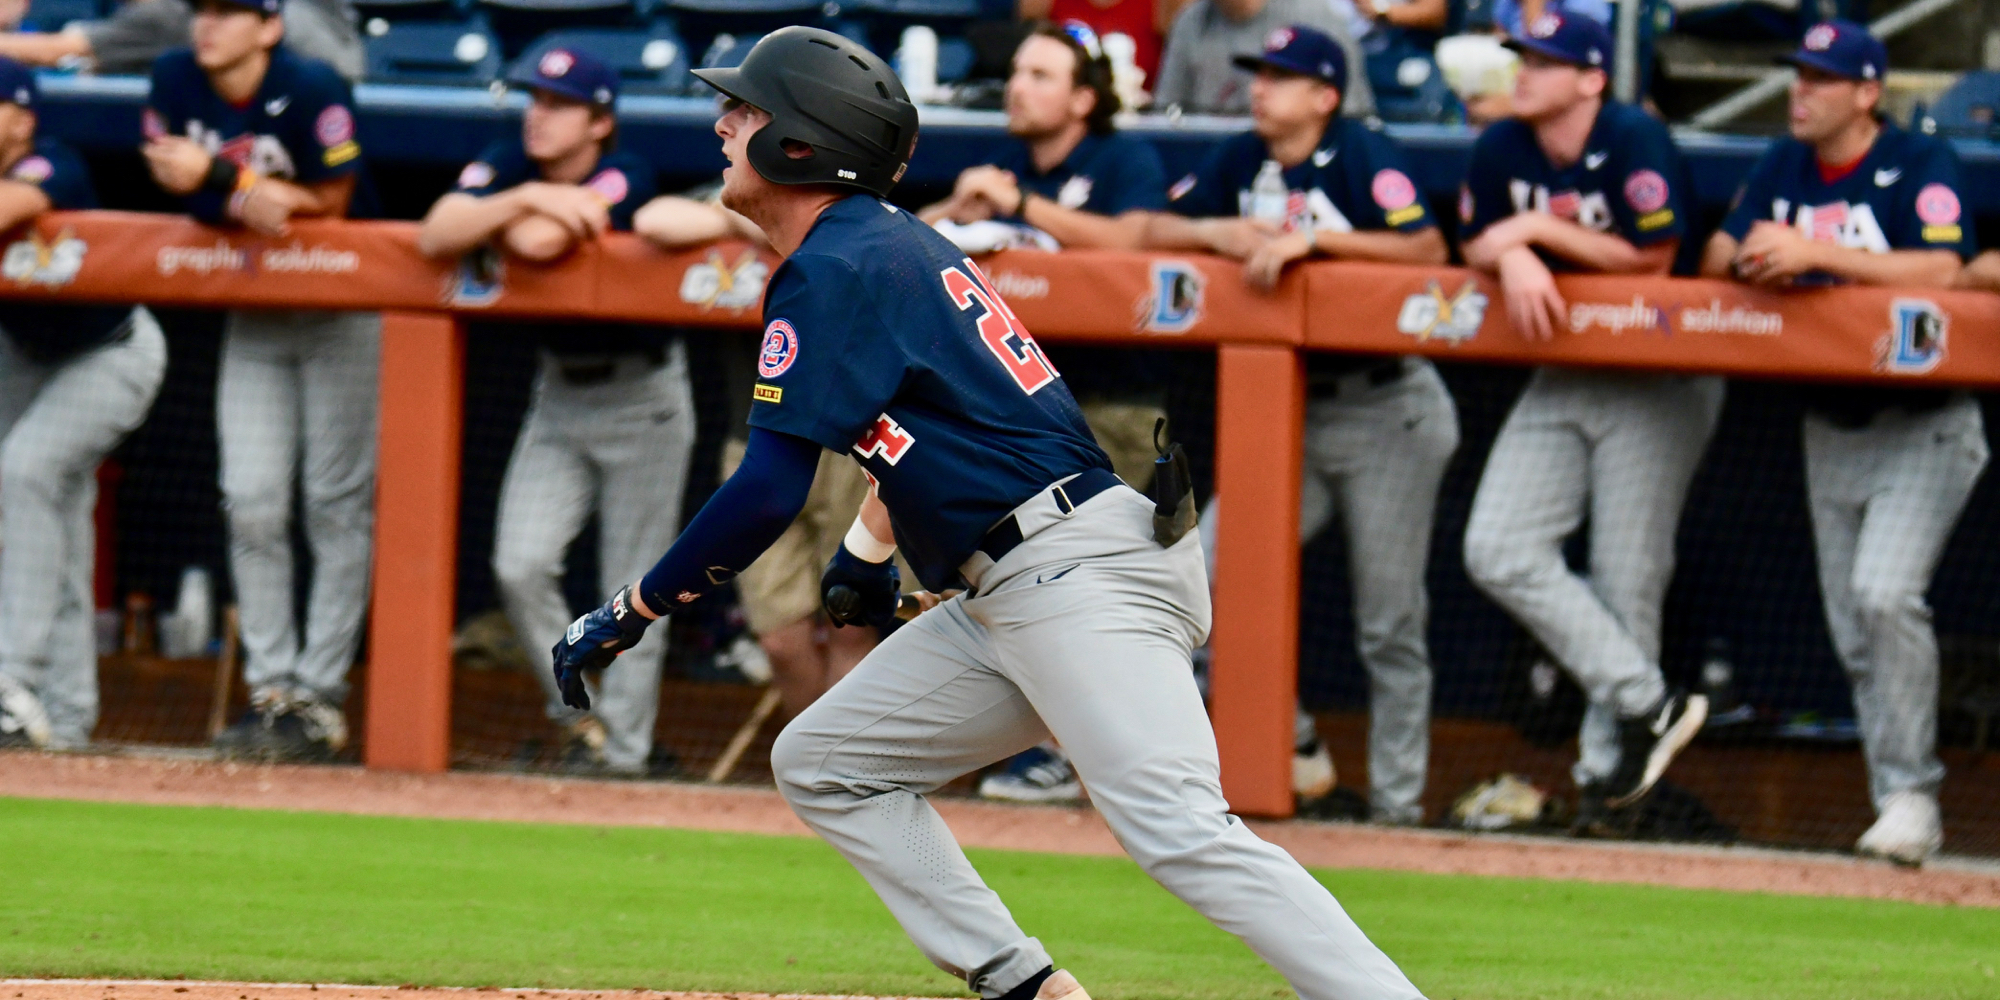 Scouting The Hitters • D1Baseball